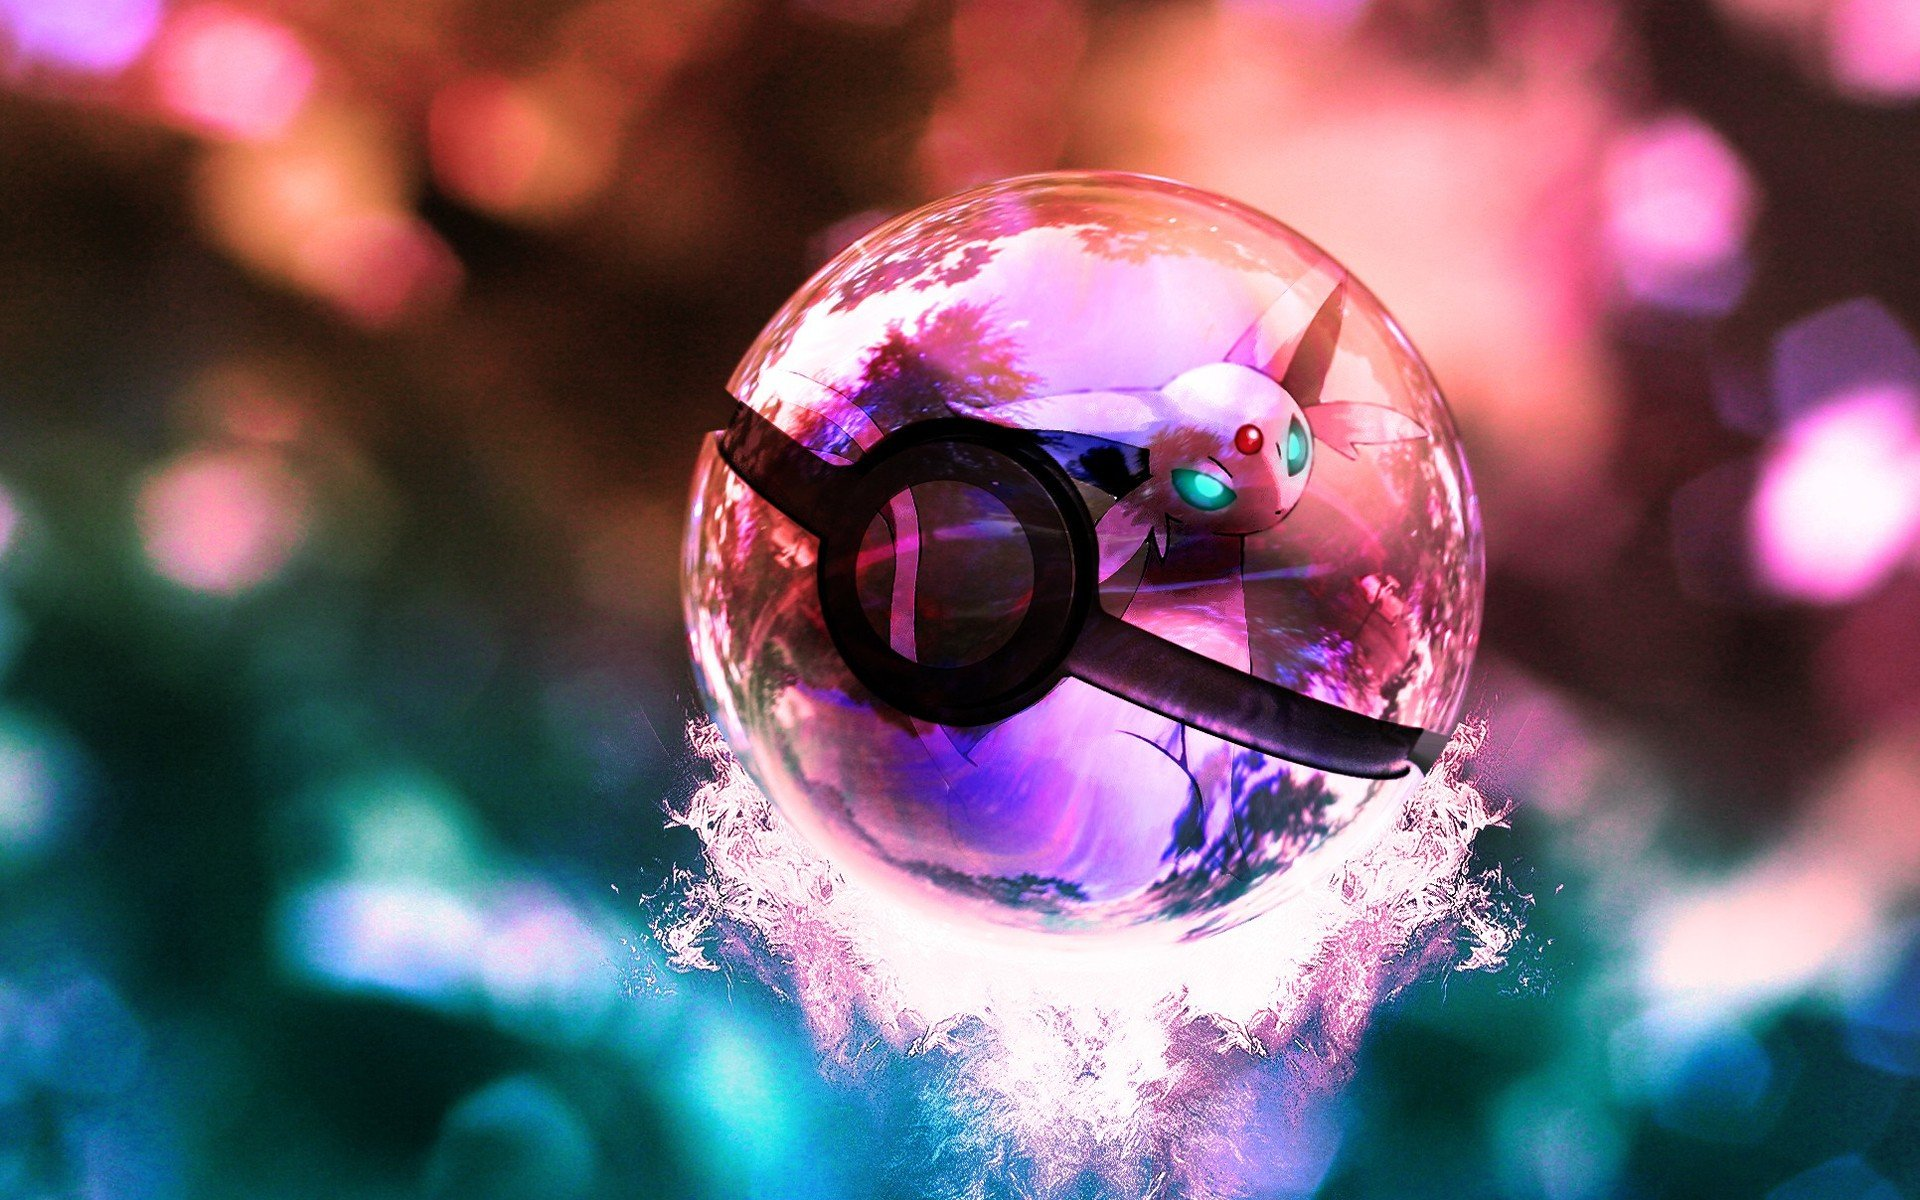 Download Pokemon Wallpaper 1920x1200 Full HD Wallpapers 1920x1200